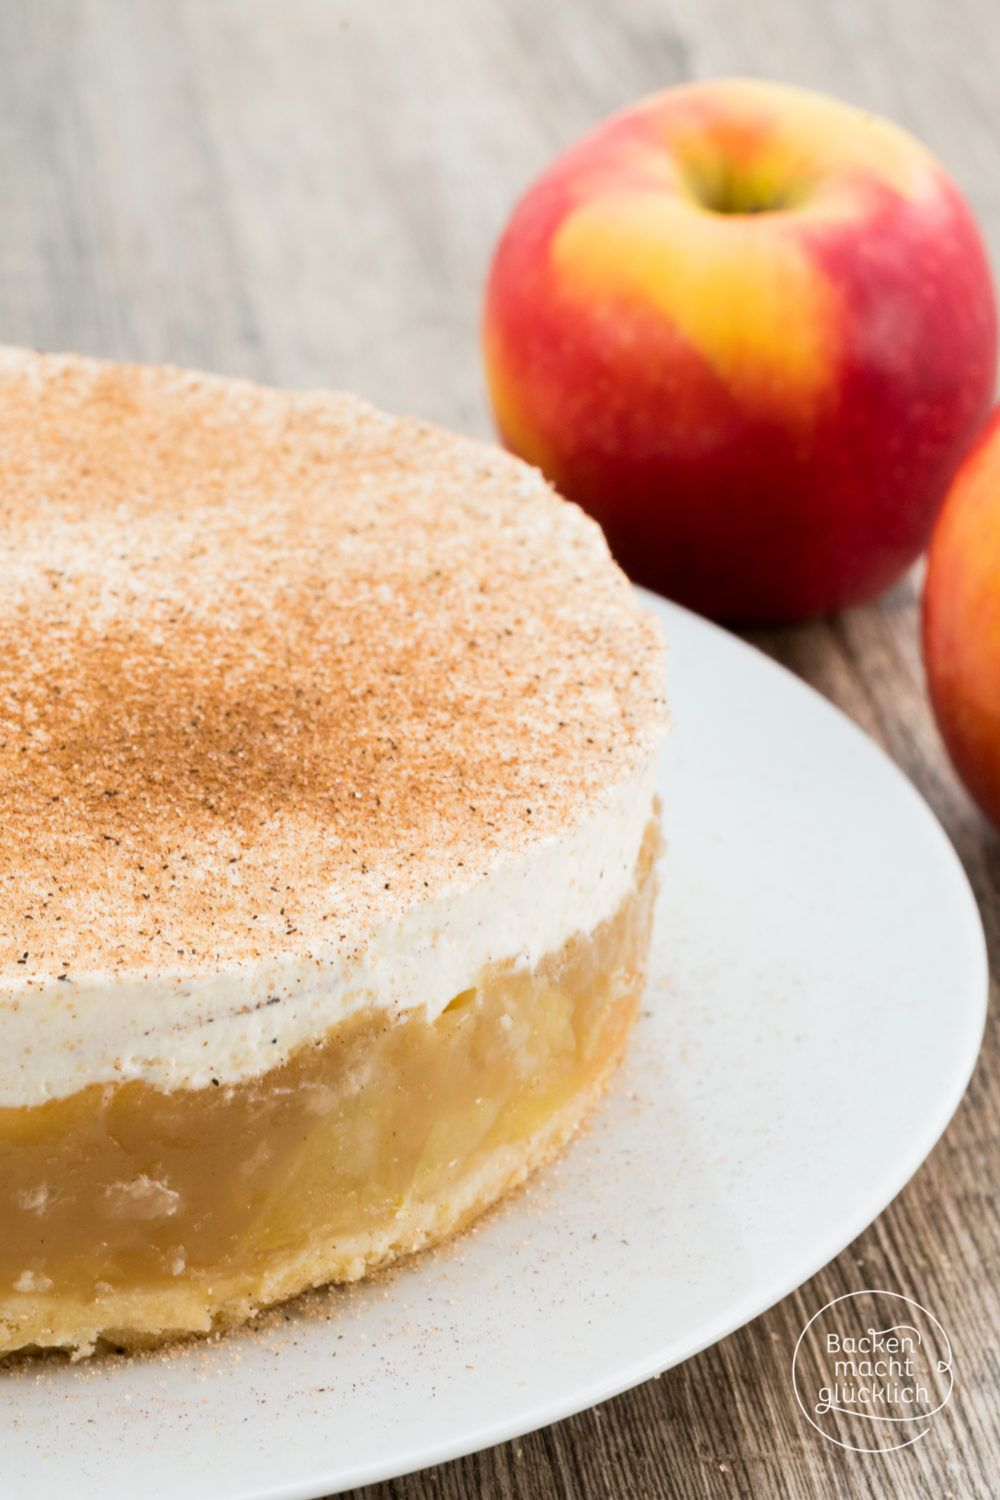 Photo of Apple Pie with Cream and Cinnamon | Baking makes you happy